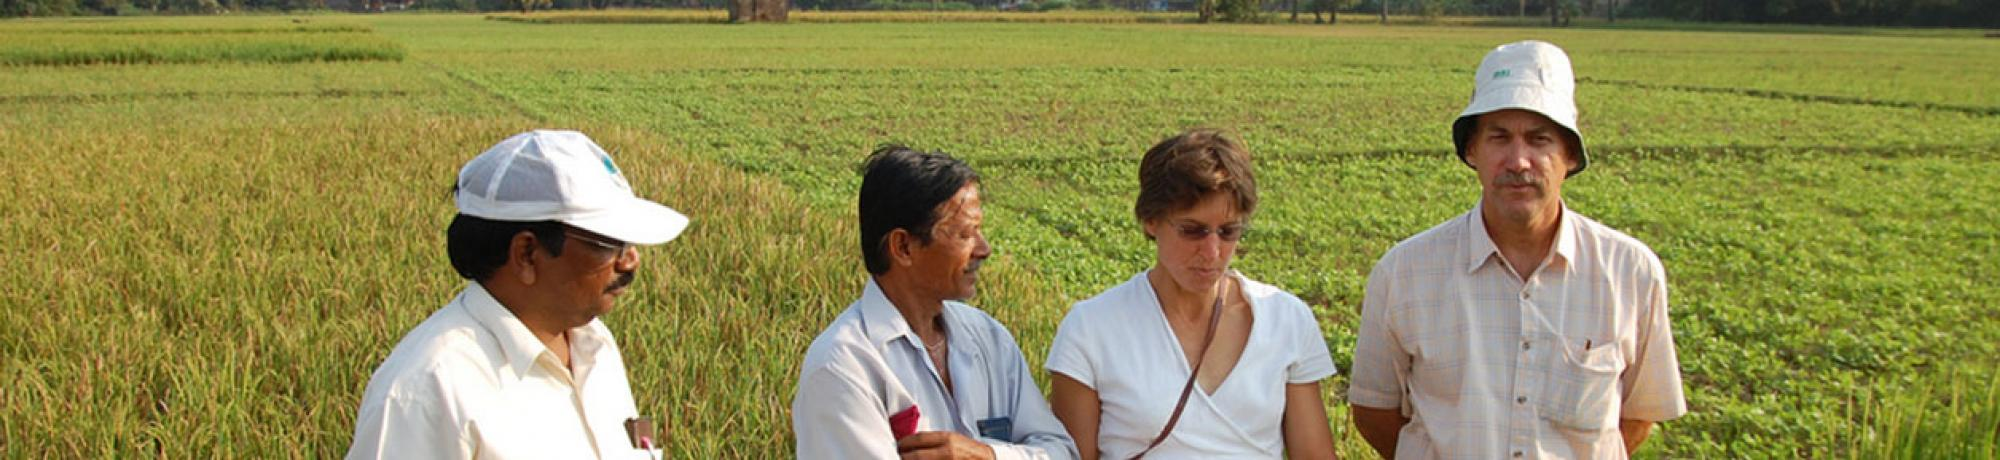 Dr. Ronald and farmers in Bangladesh